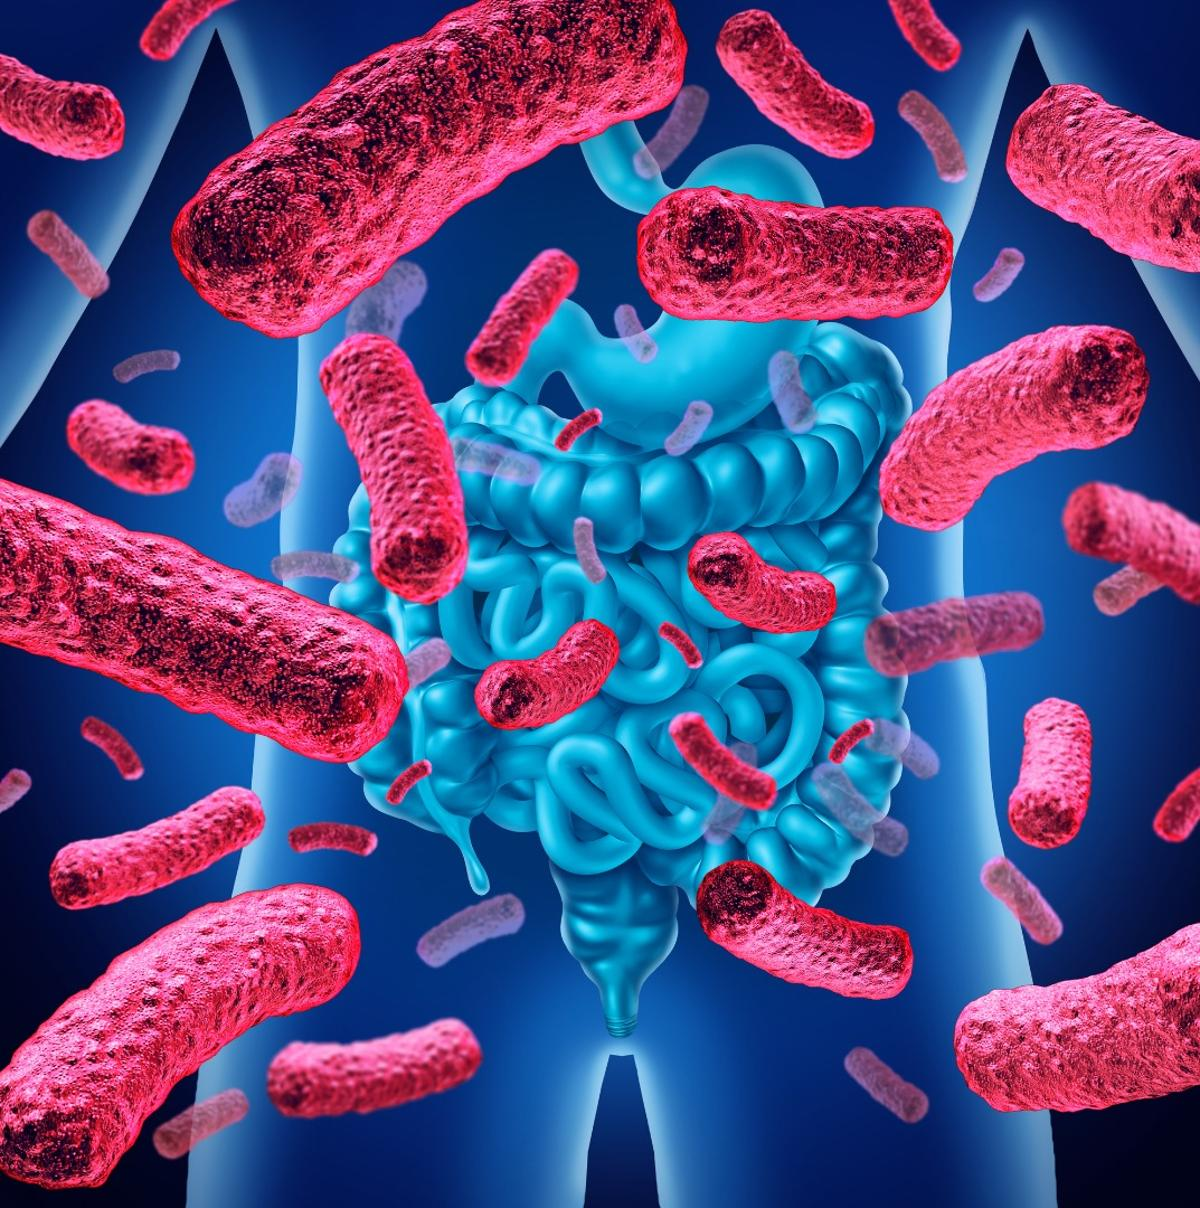 A new study has found gut bacteria may play apart inanxiety and depression seen to accompany conditions such as obesity and diabetes